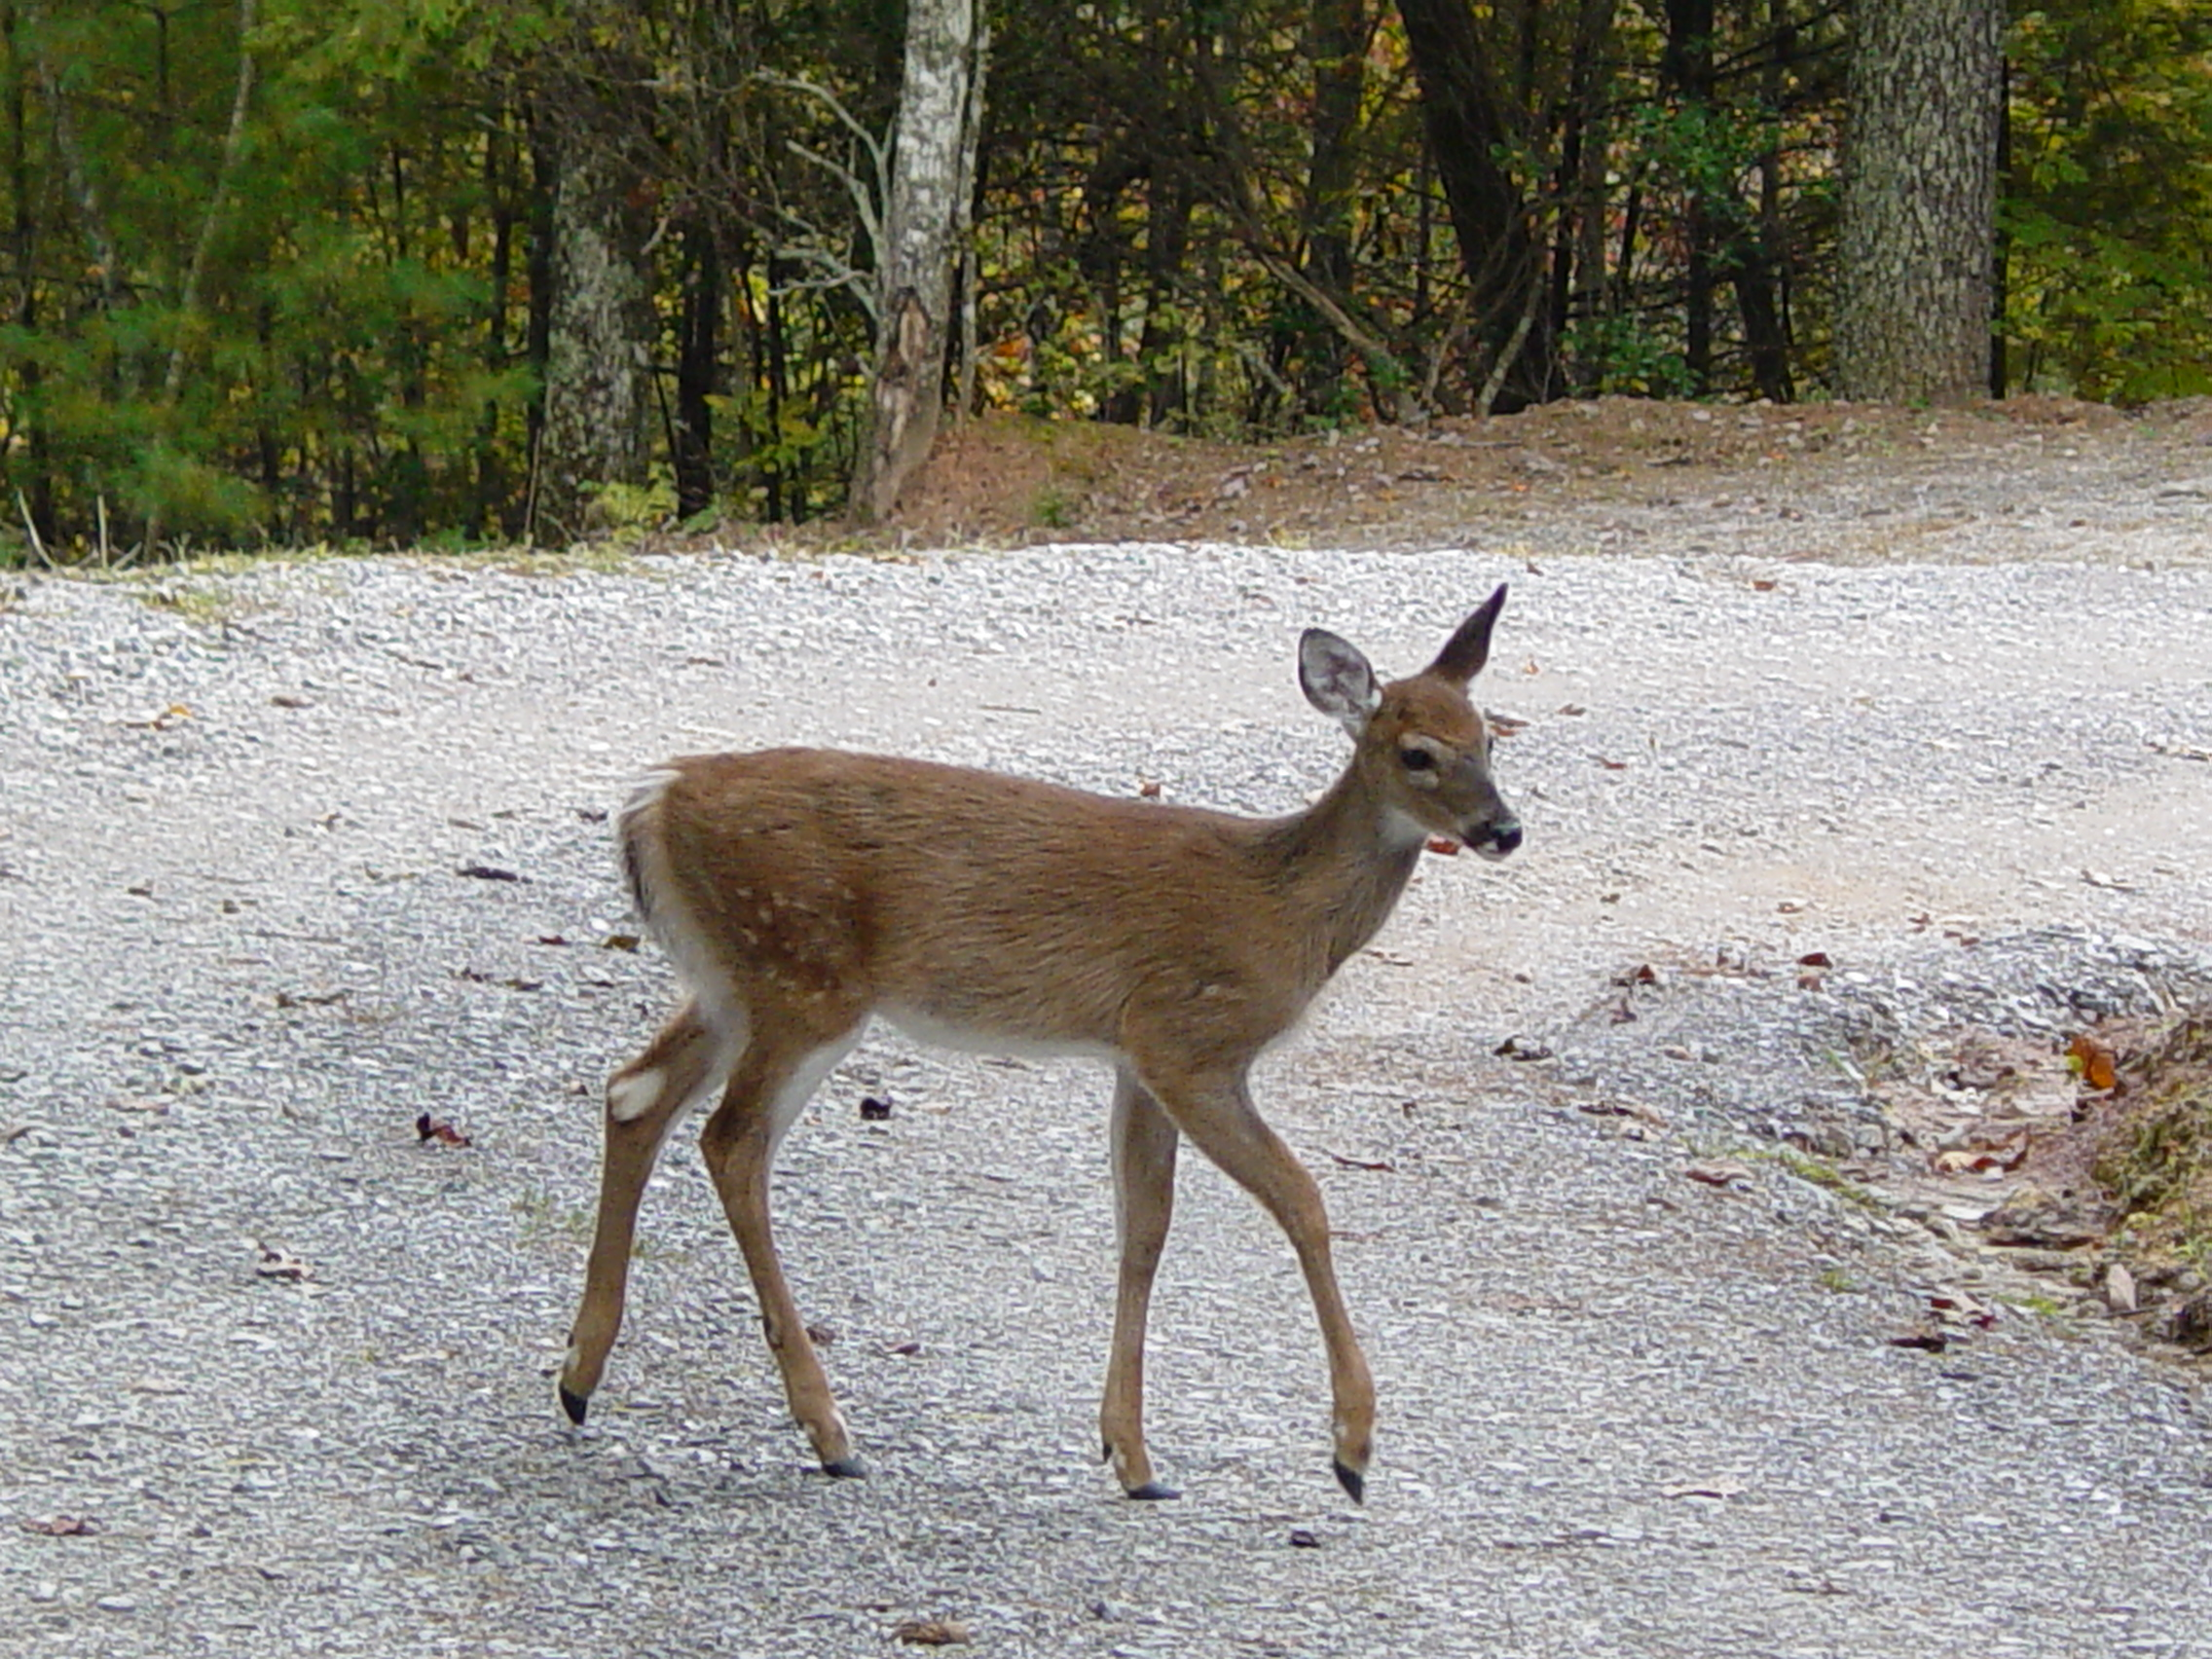 Deer Pictures - Fawn @ Pinecrest 004.jpg